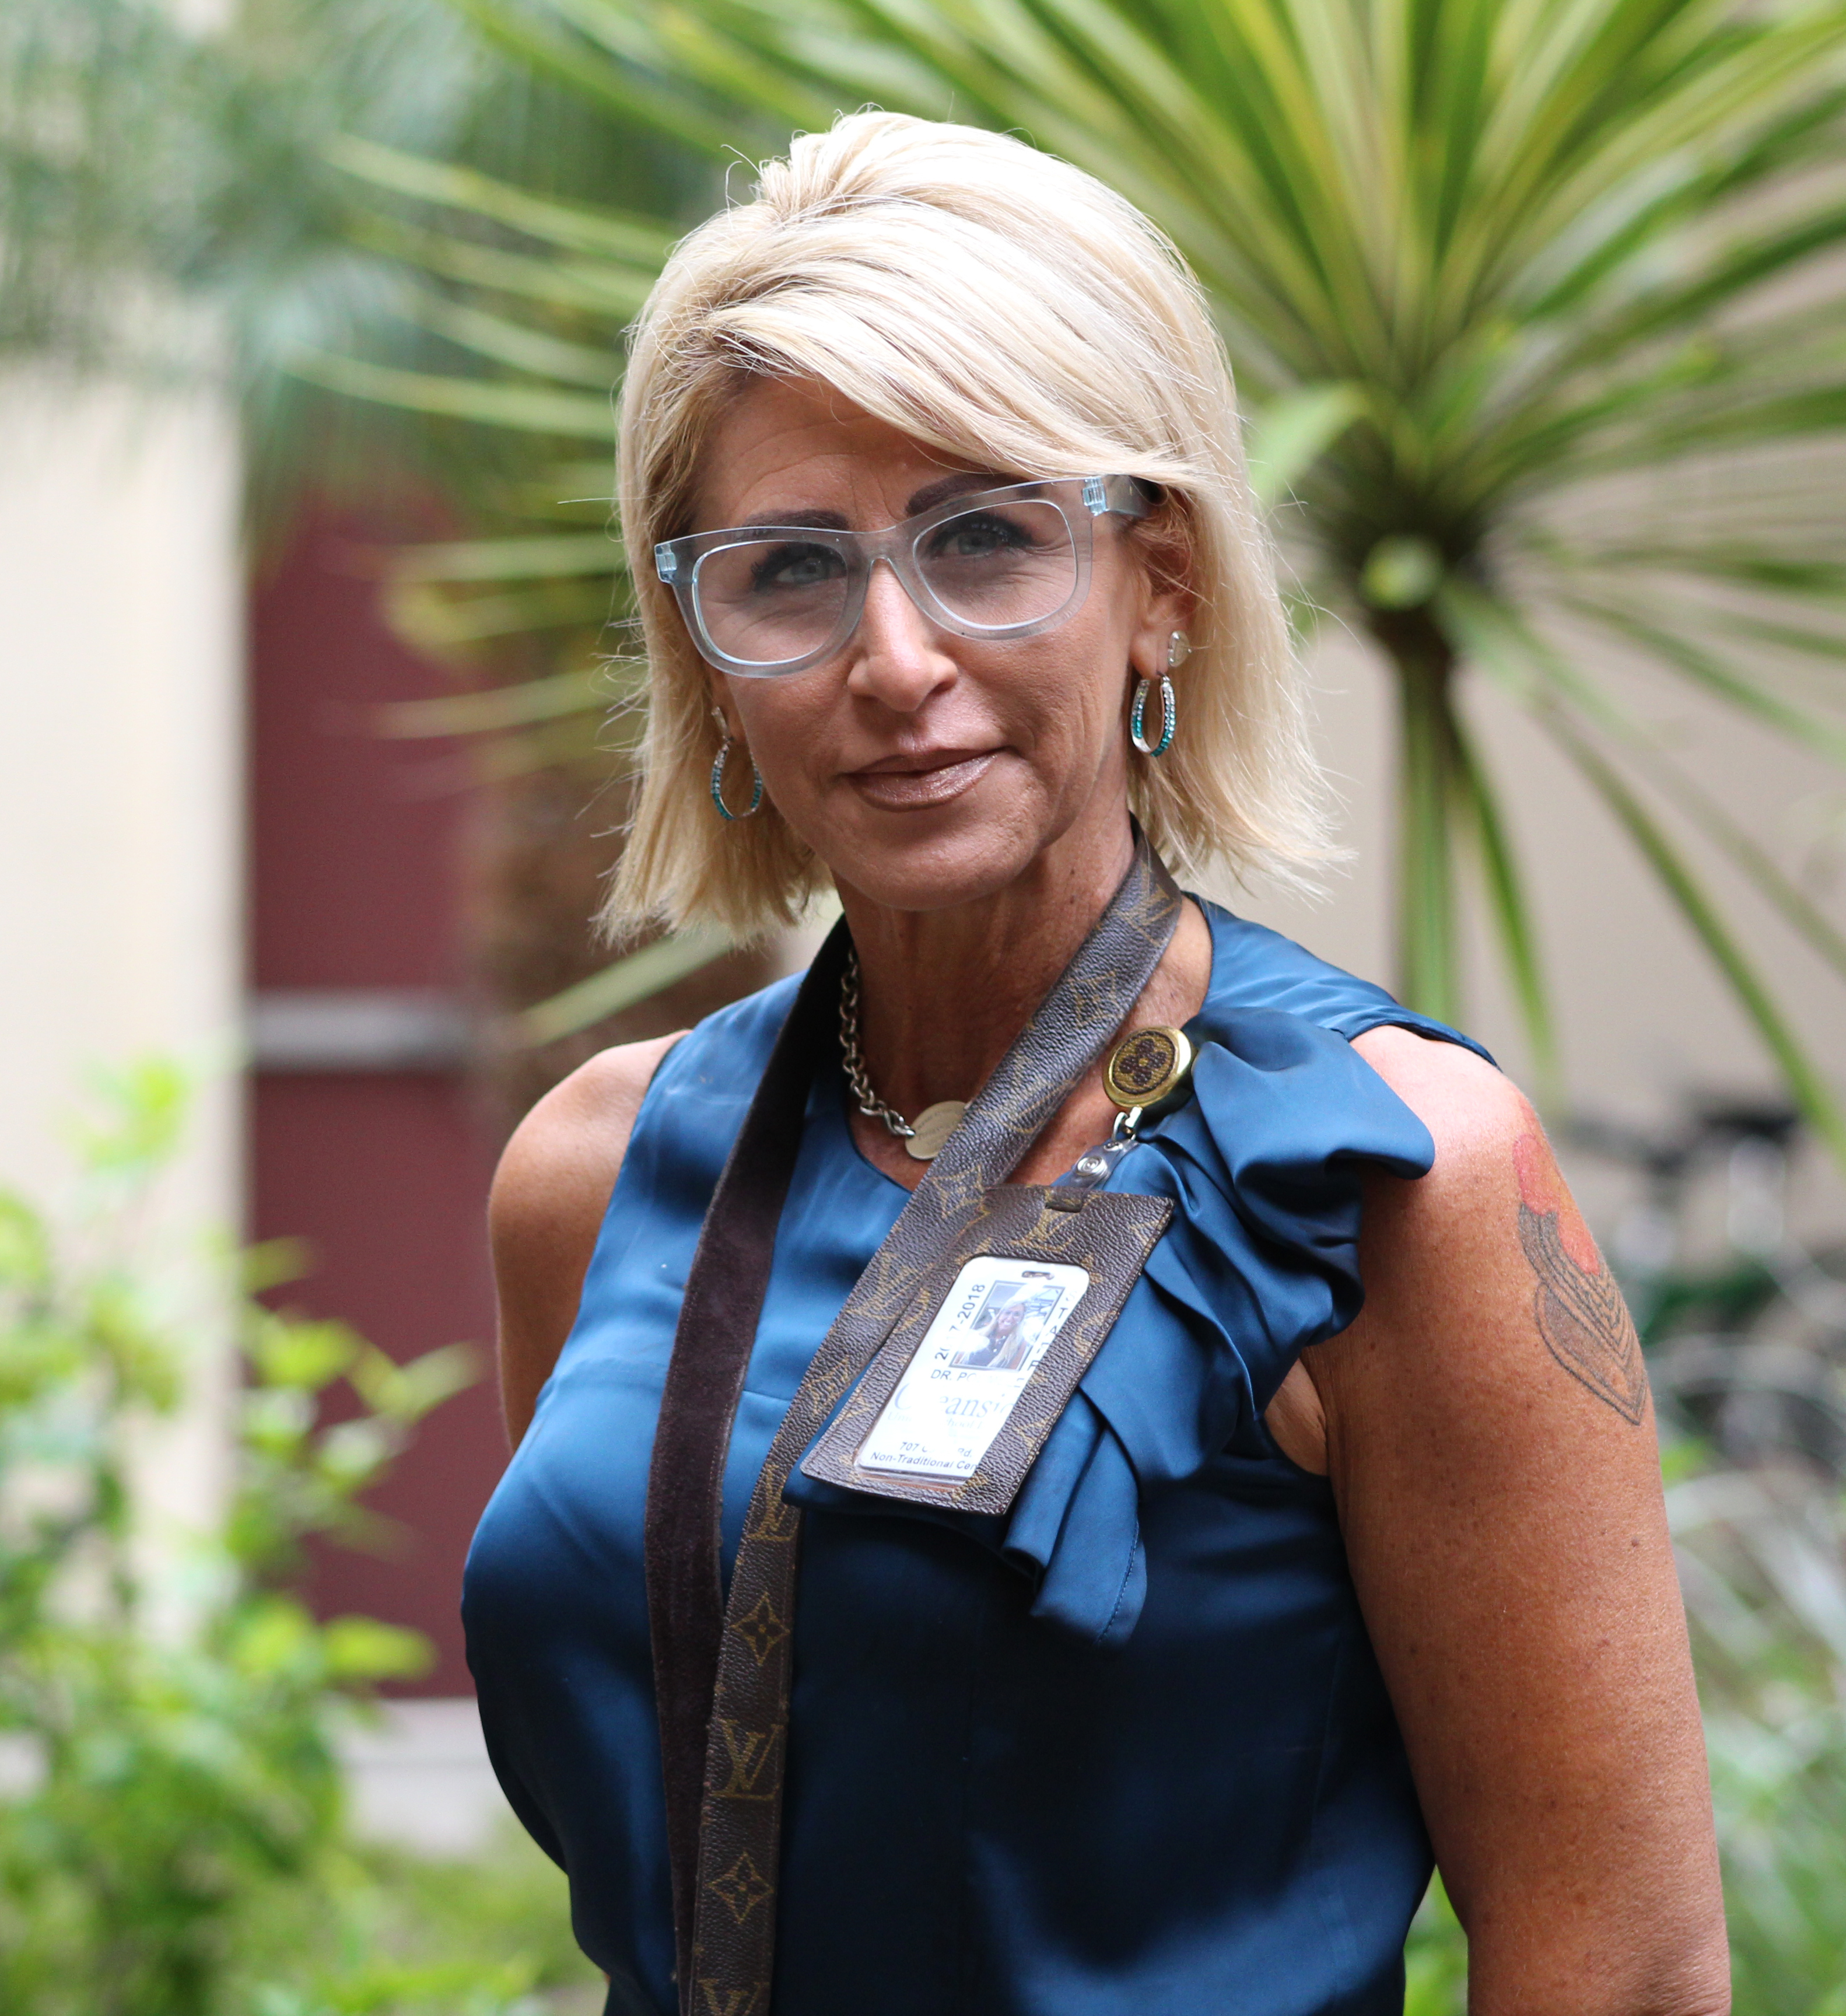 Stroke doesn't slow Oceanside principal Dr. Jessica Poumele